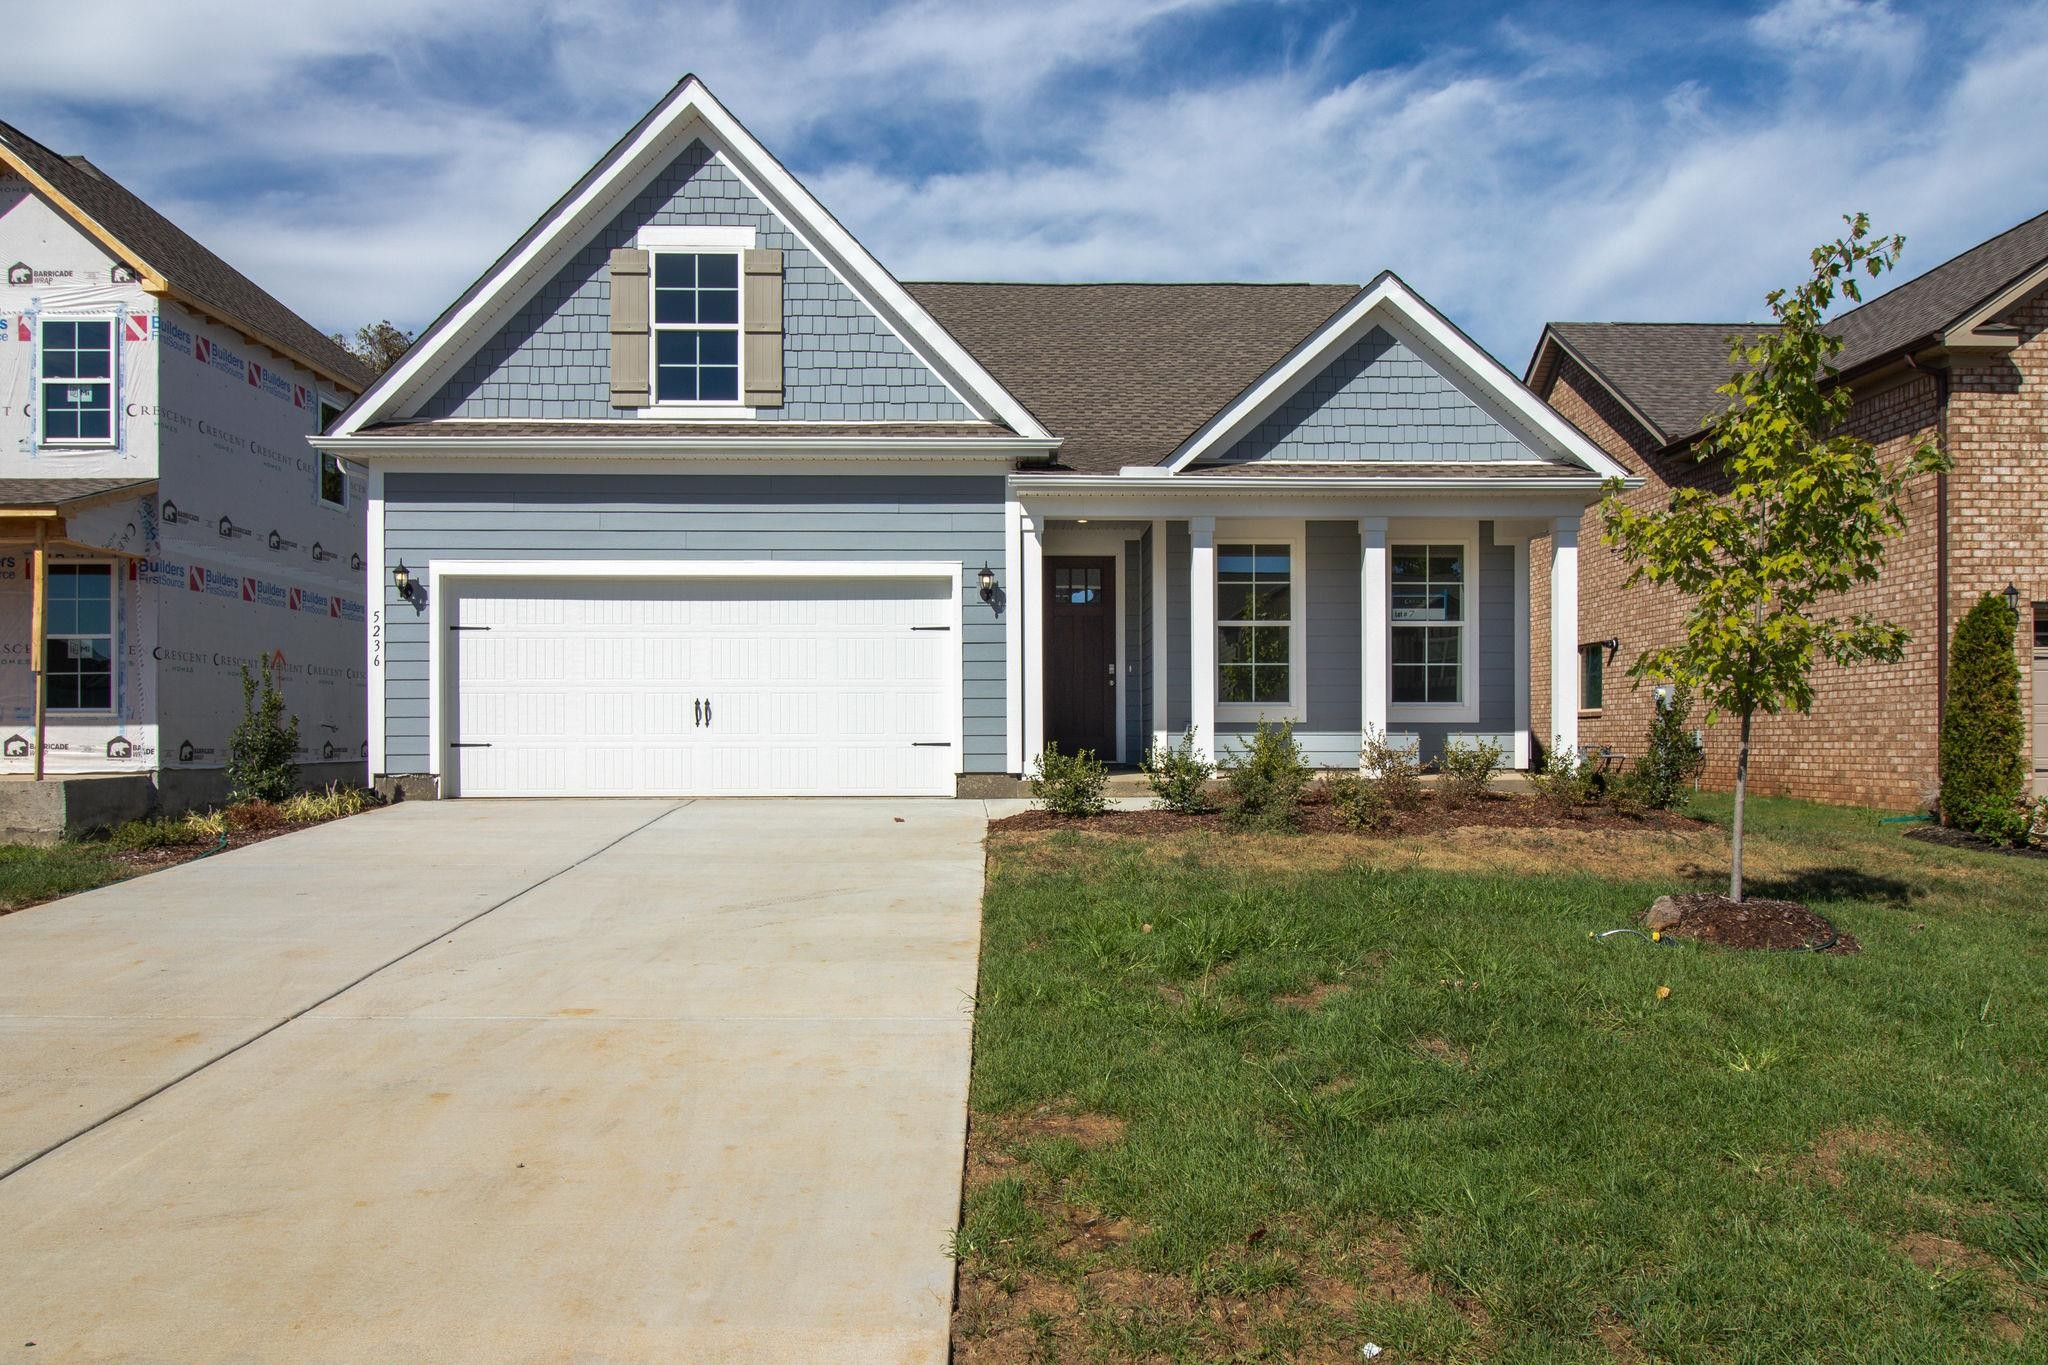 5236 Pointer Place Lot 7, Murfreesboro, TN 37129 - Murfreesboro, TN real estate listing